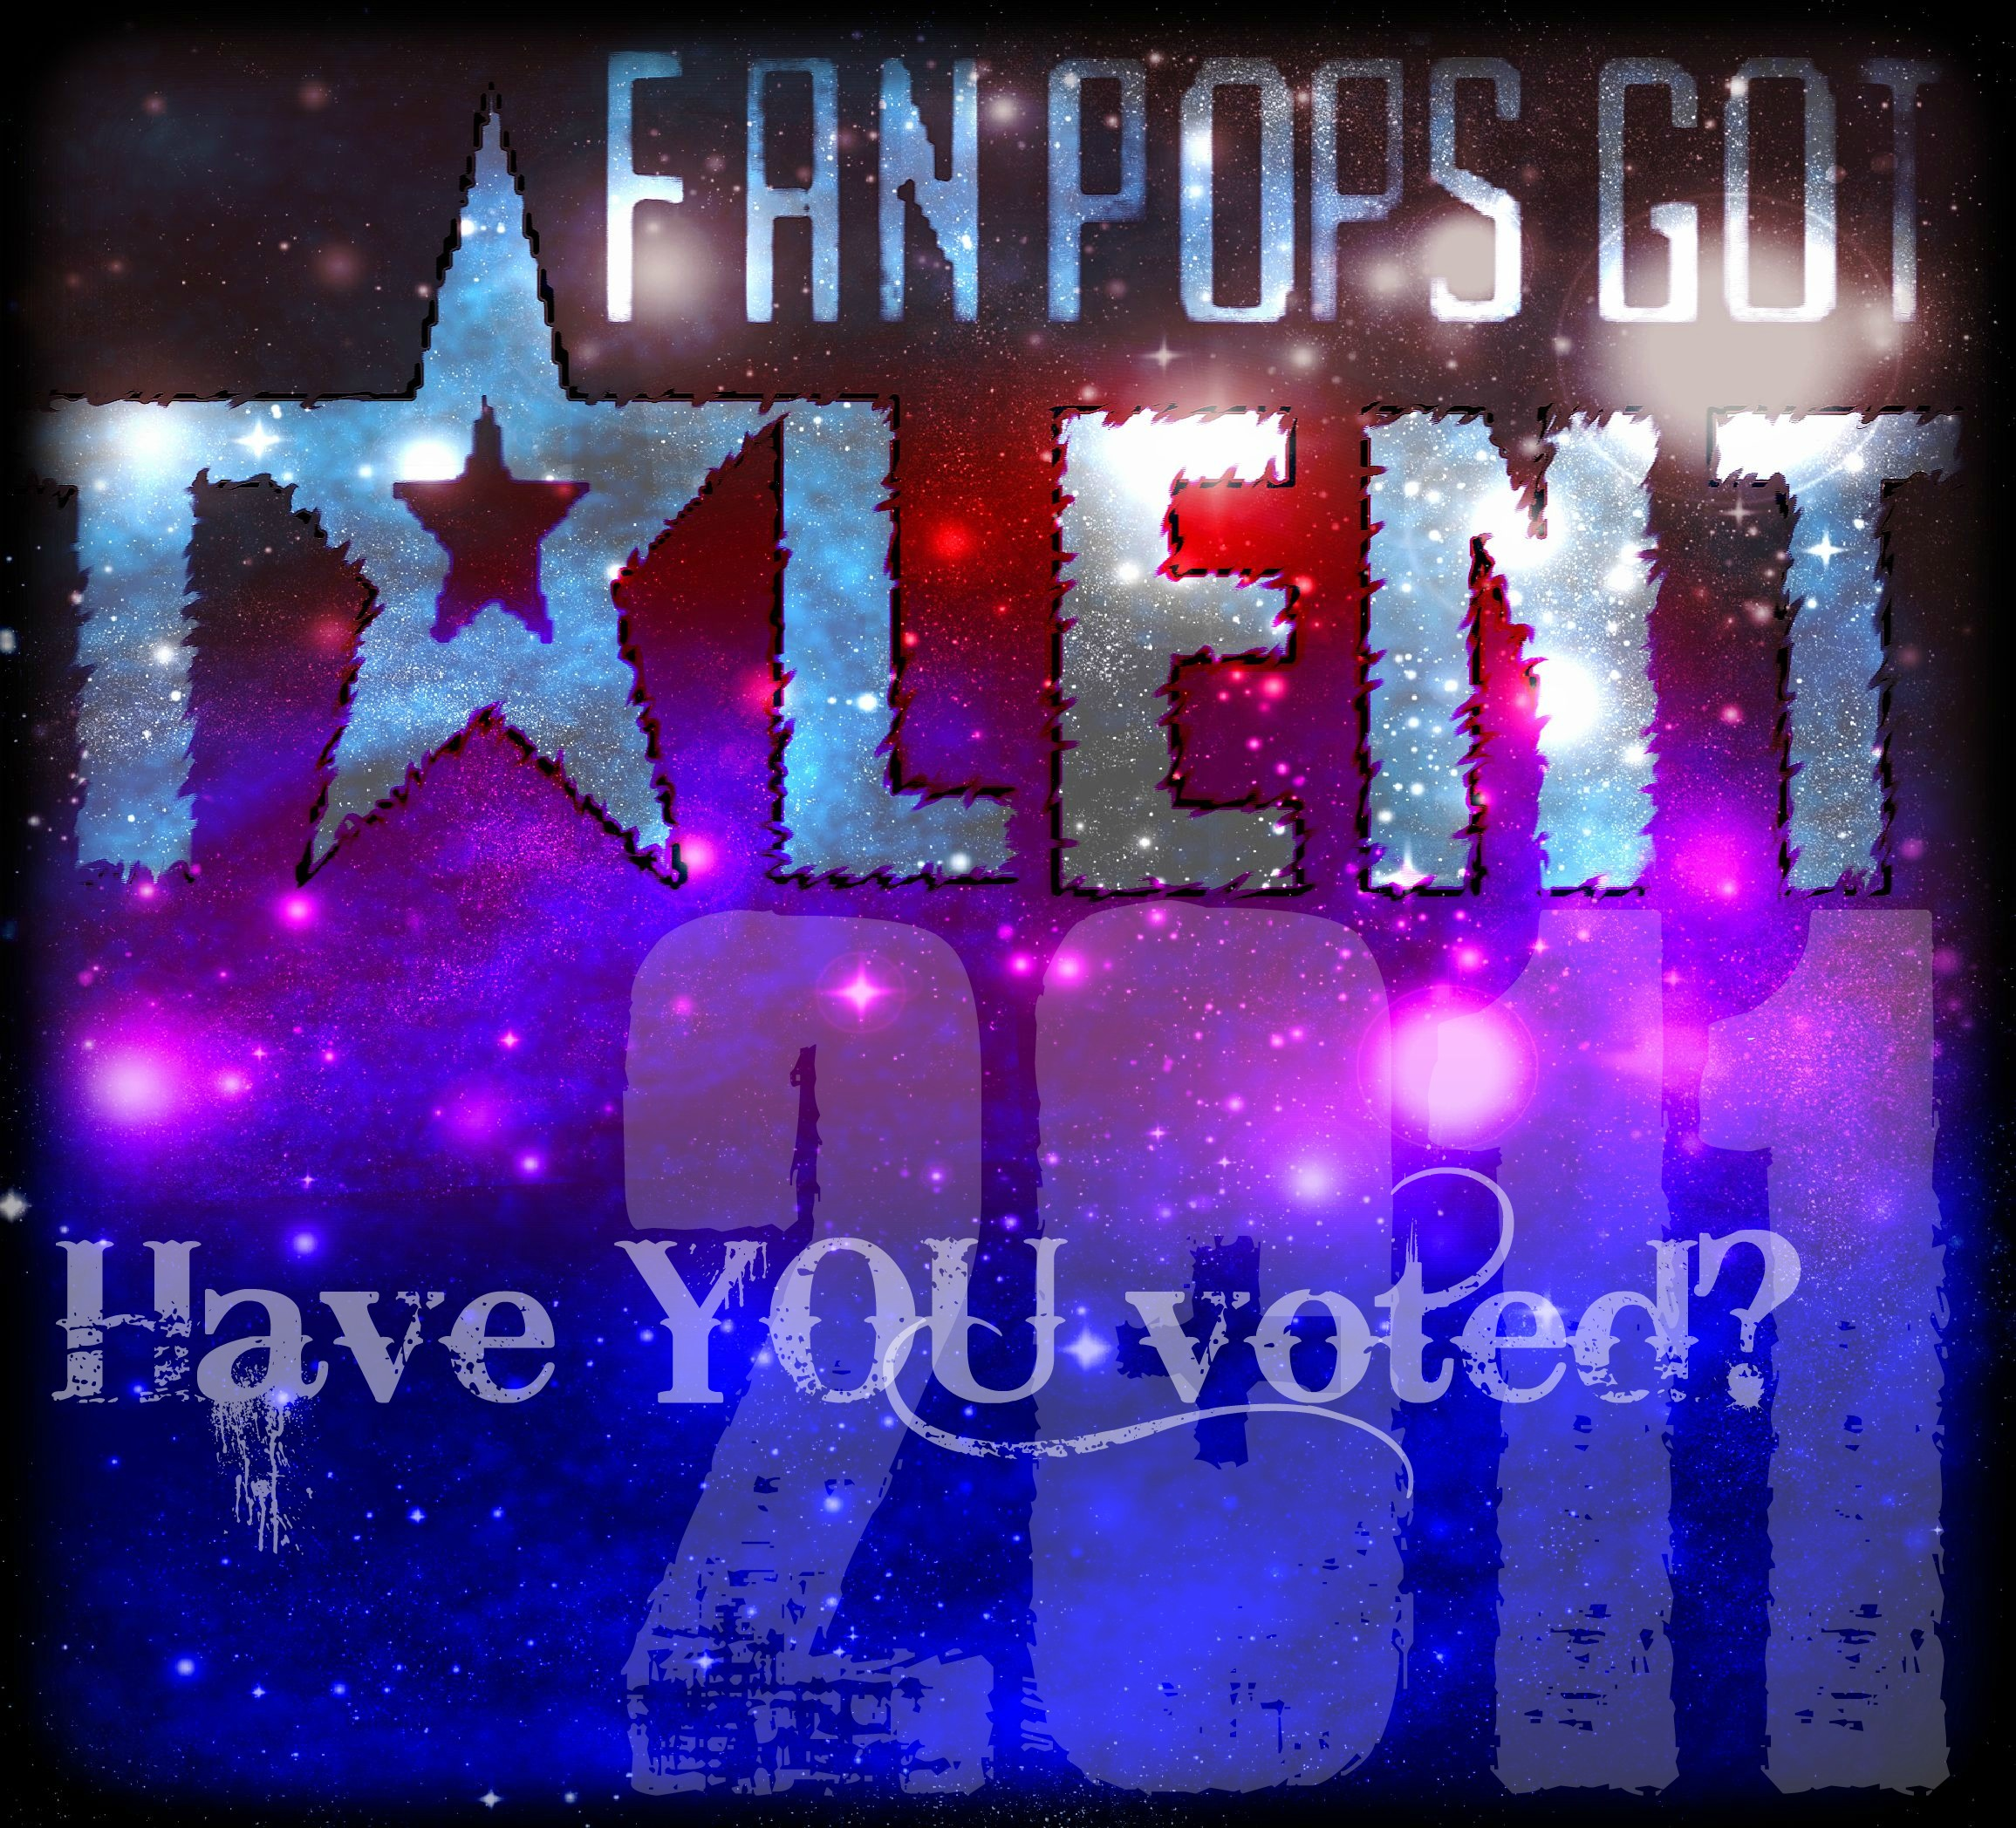 FGT 2011 - Have あなた voted yet?